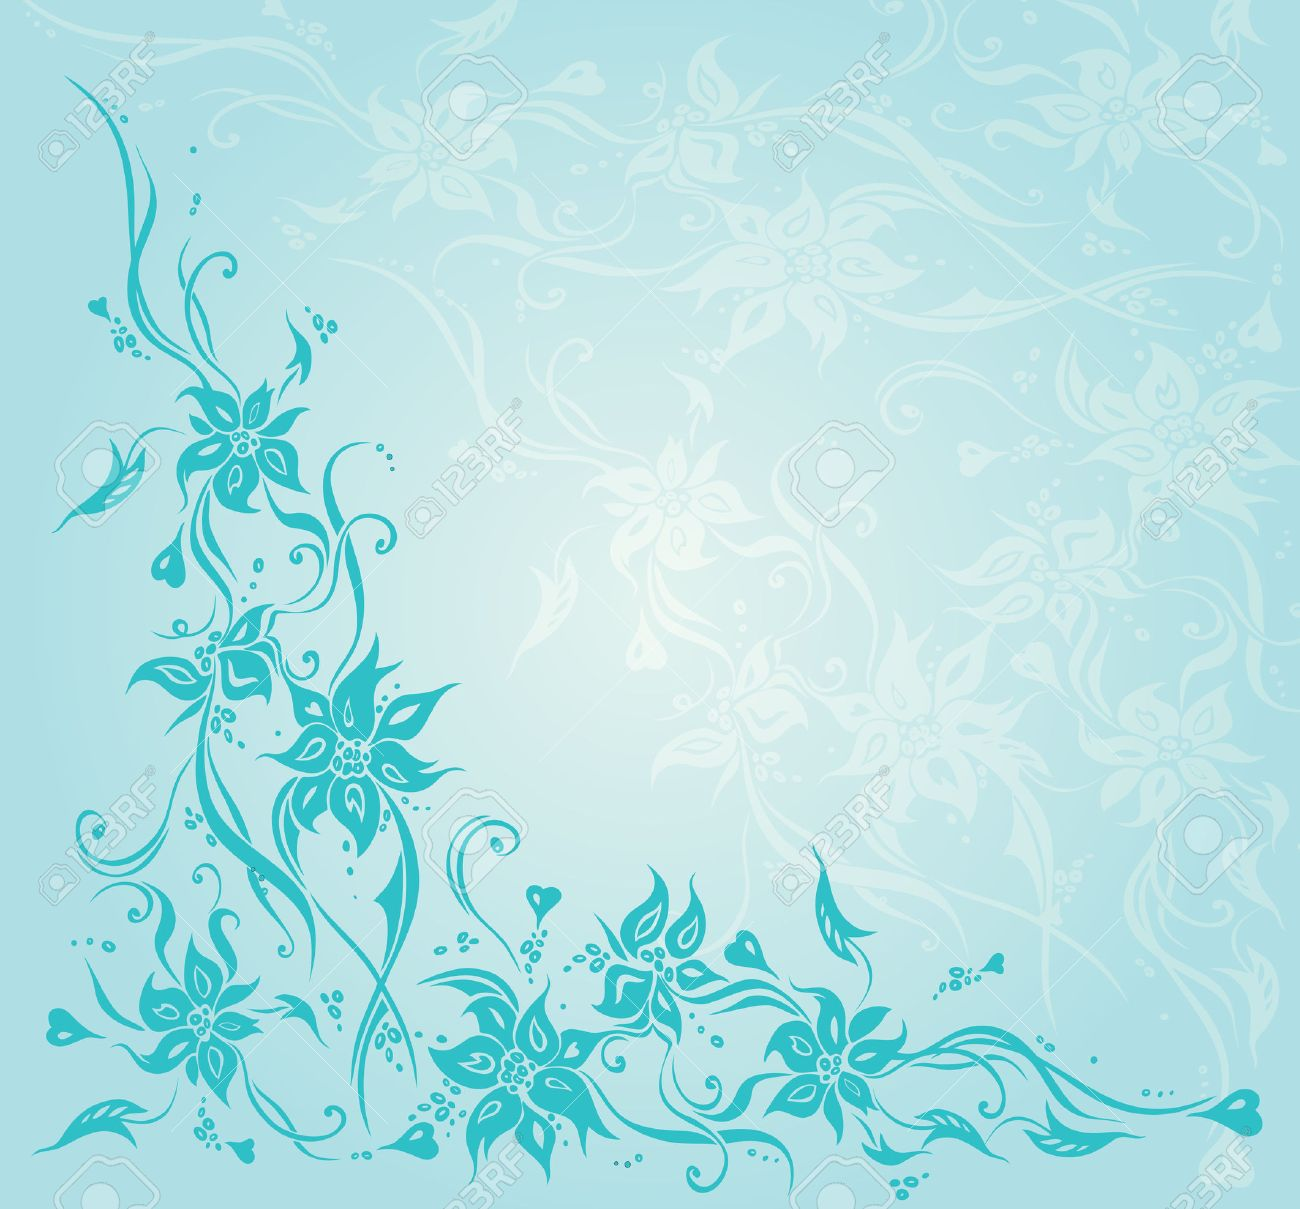 Turquoise Green Blue Vintage Floral Invitation Wedding Background Design Stock Vector